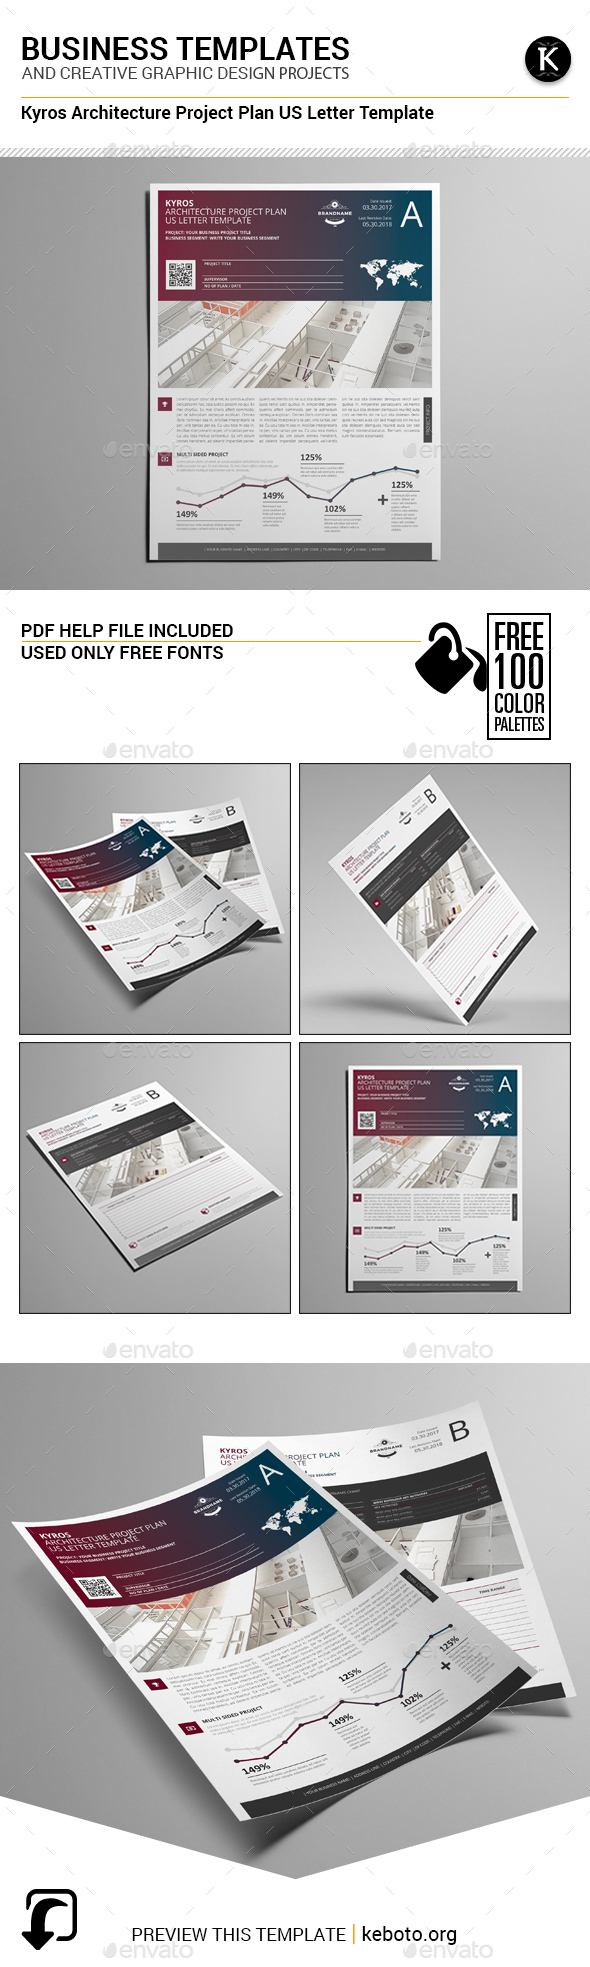 Kyros Architecture Project Plan US Letter Template - Miscellaneous Print Templates